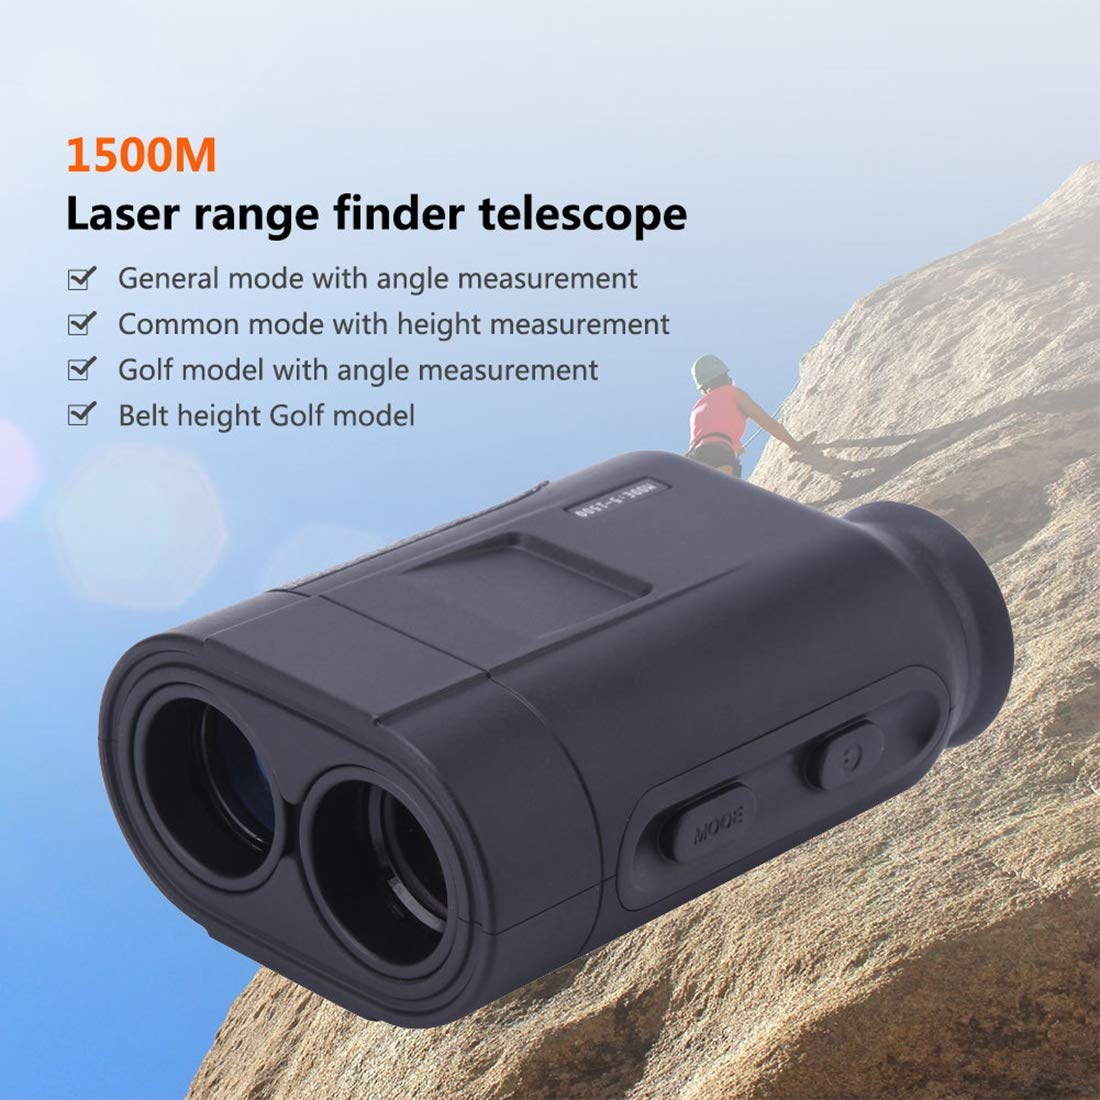 Claymore Laser Rangefinder - Range : 5-1600 Yards, 1 Yard Accuracy, Golf Rangefinder with Height, Angle, Horizontal Distance Measurement Perfect for Hunting, Golf, Engineering Survey by Claymore